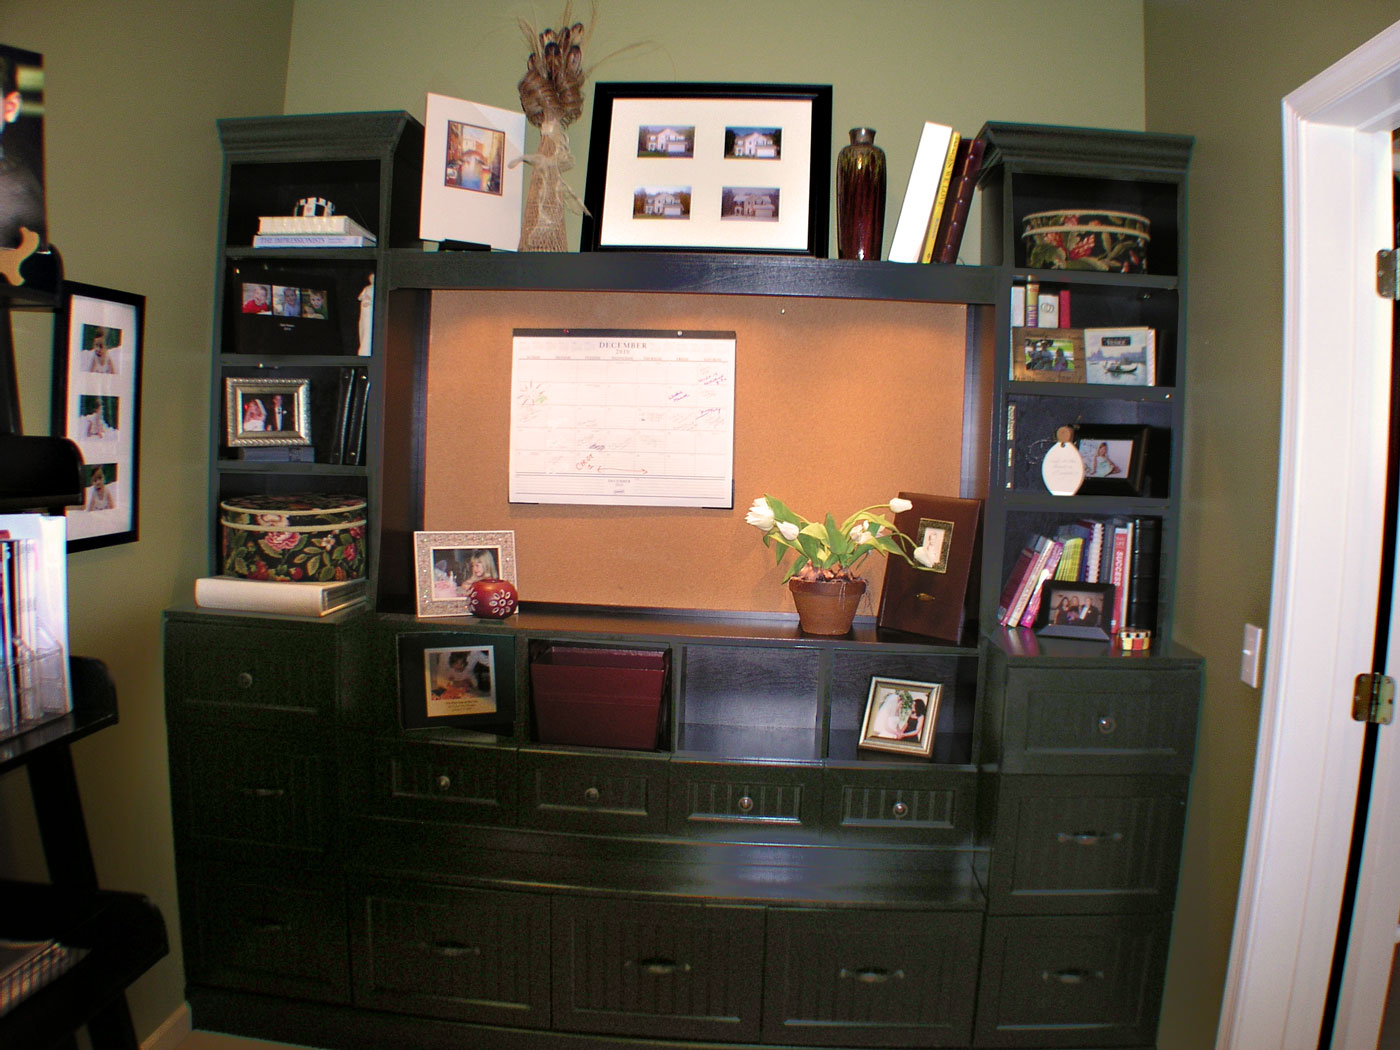 Home Office Built-in Cabinet - Craftworks Custom Cabinetry - Rochester, NY